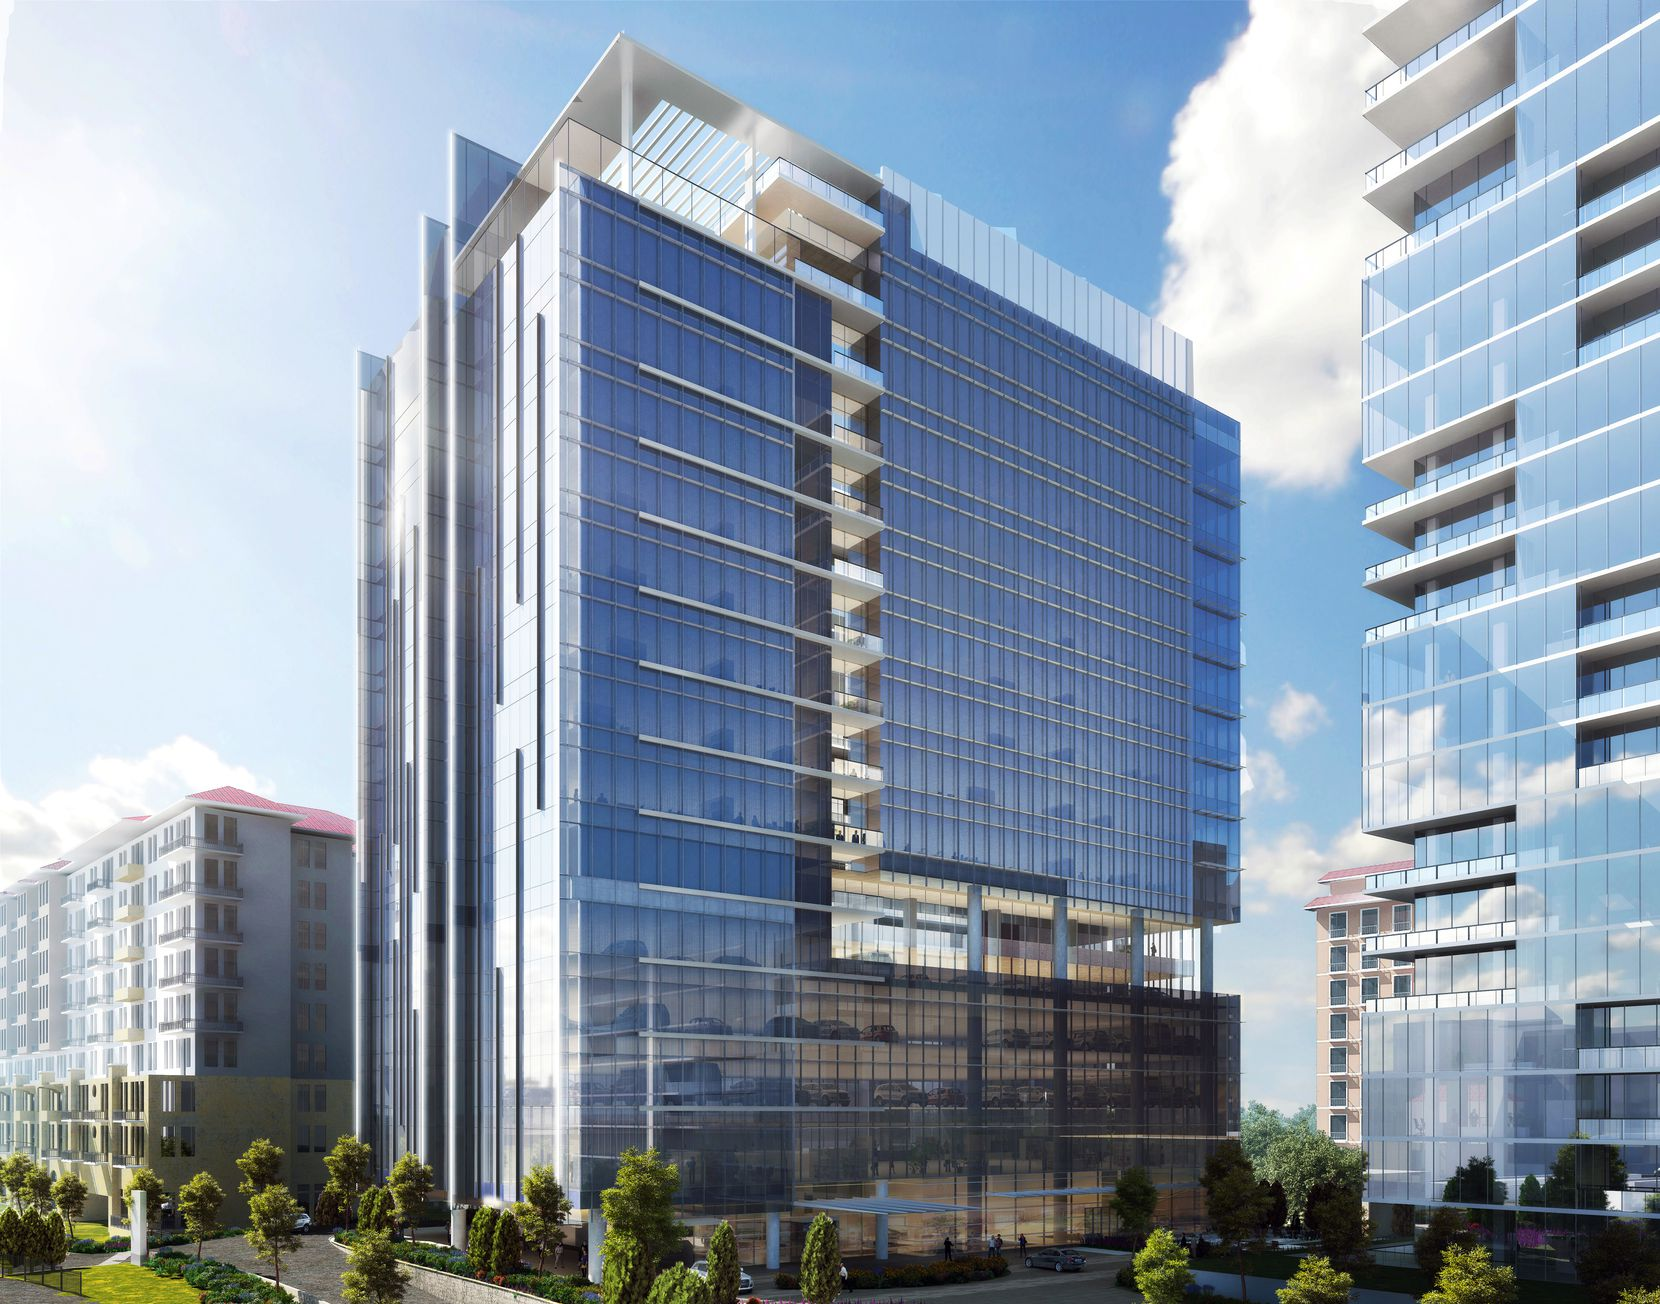 The 3-building project will include a 19-story office tower.